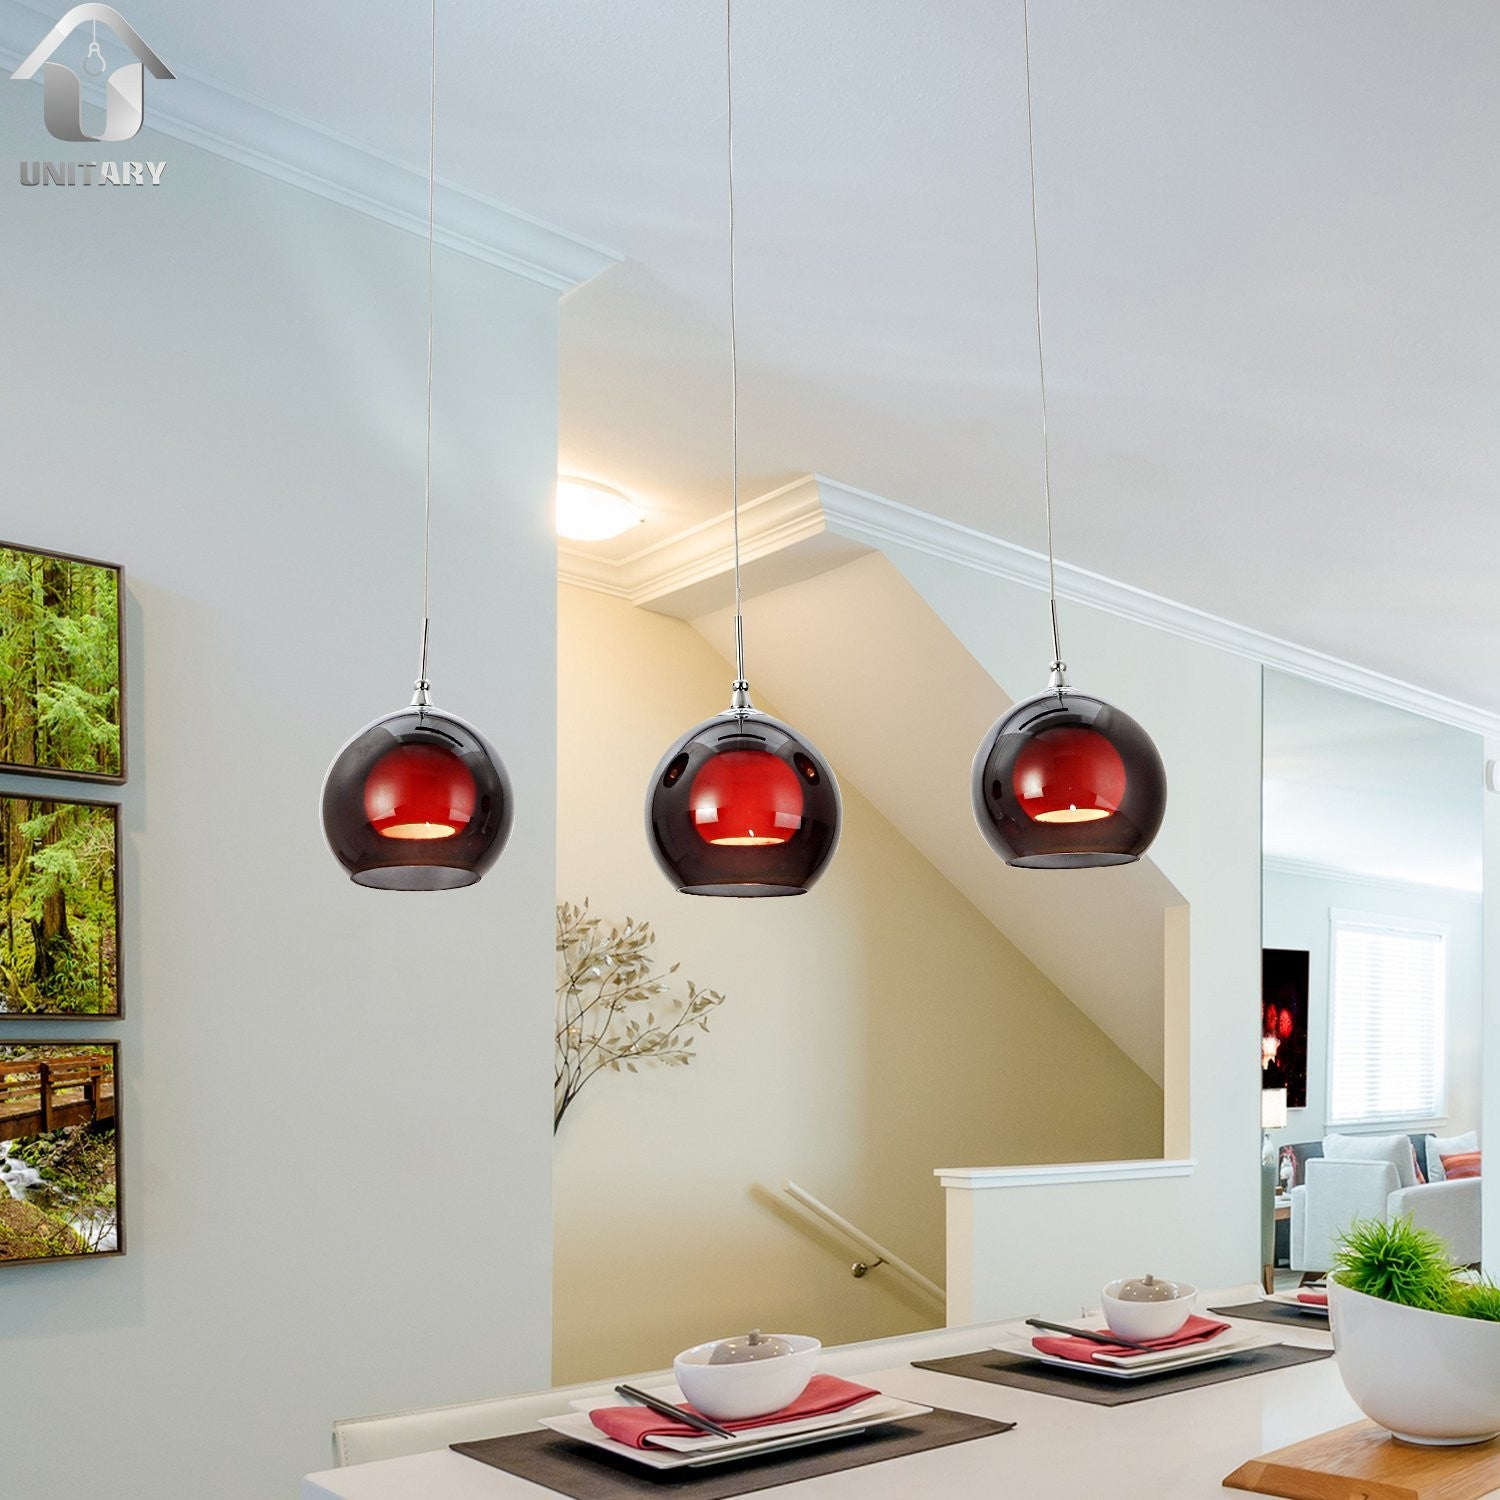 UNITARY BRAND Modern Red Murano Glass Shade Pendant Light Max 120W with 3 lights Plating Finish